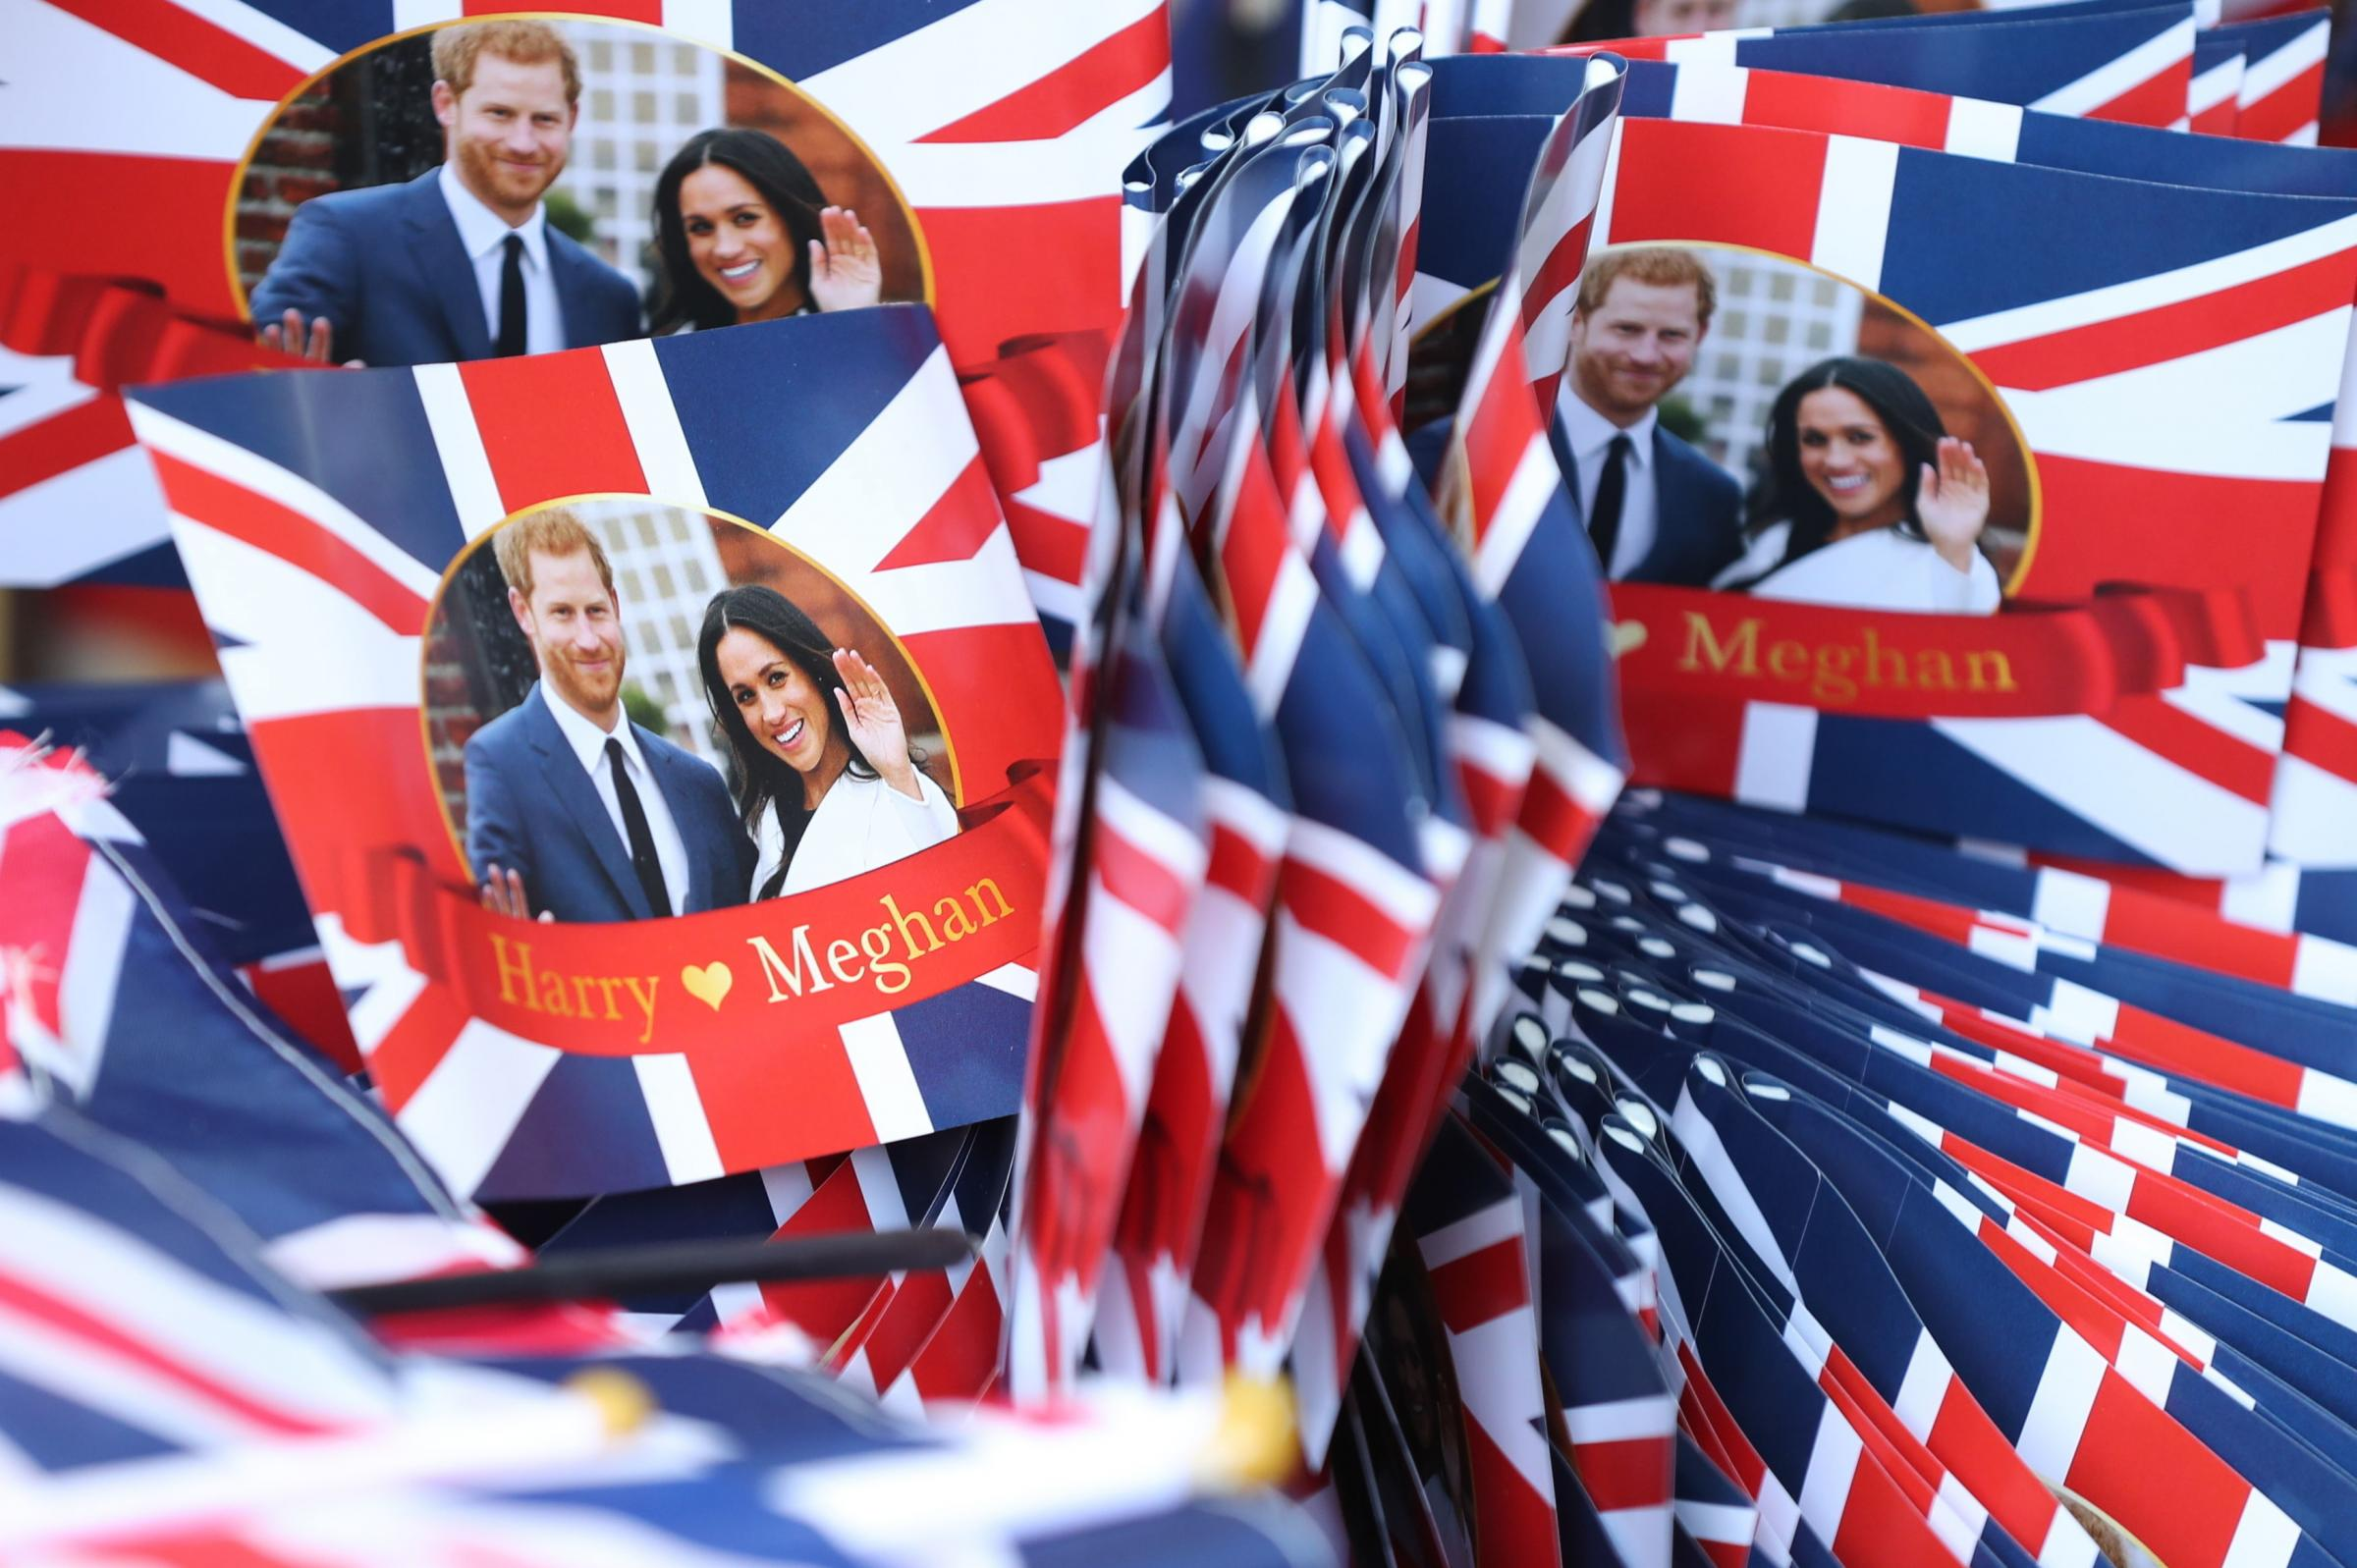 intu Merry Hill will show the wedding of Prince Harry and Meghan Markle this Saturday (May 19). Photo: Gareth Fuller/PA Wire